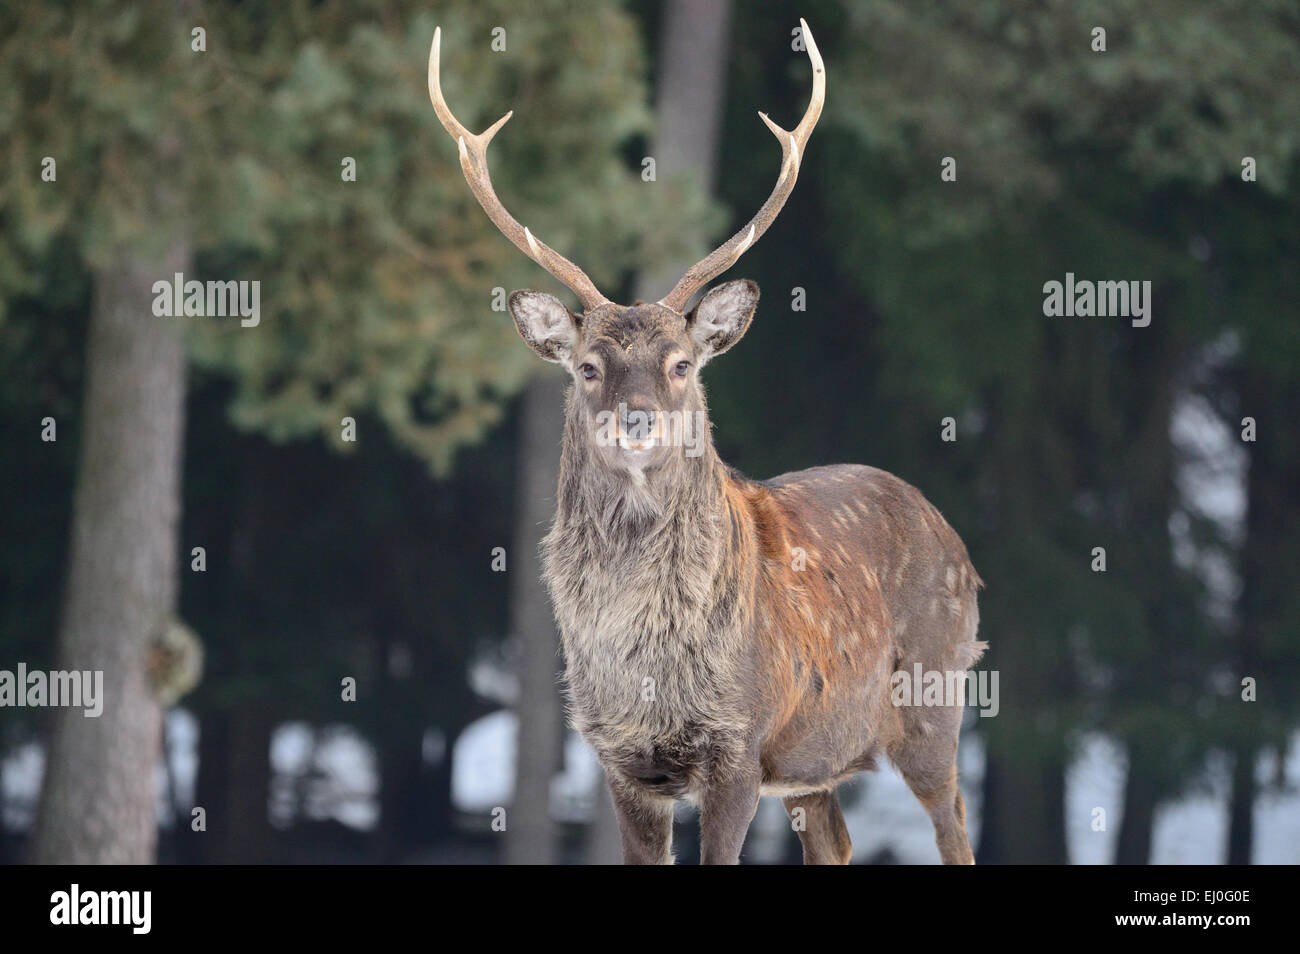 Sika, animal, Tier, winter, Japanese deer, deer, stag, Cervus nippon, deer, stags, animals, wild animals, Asian - Stock Image